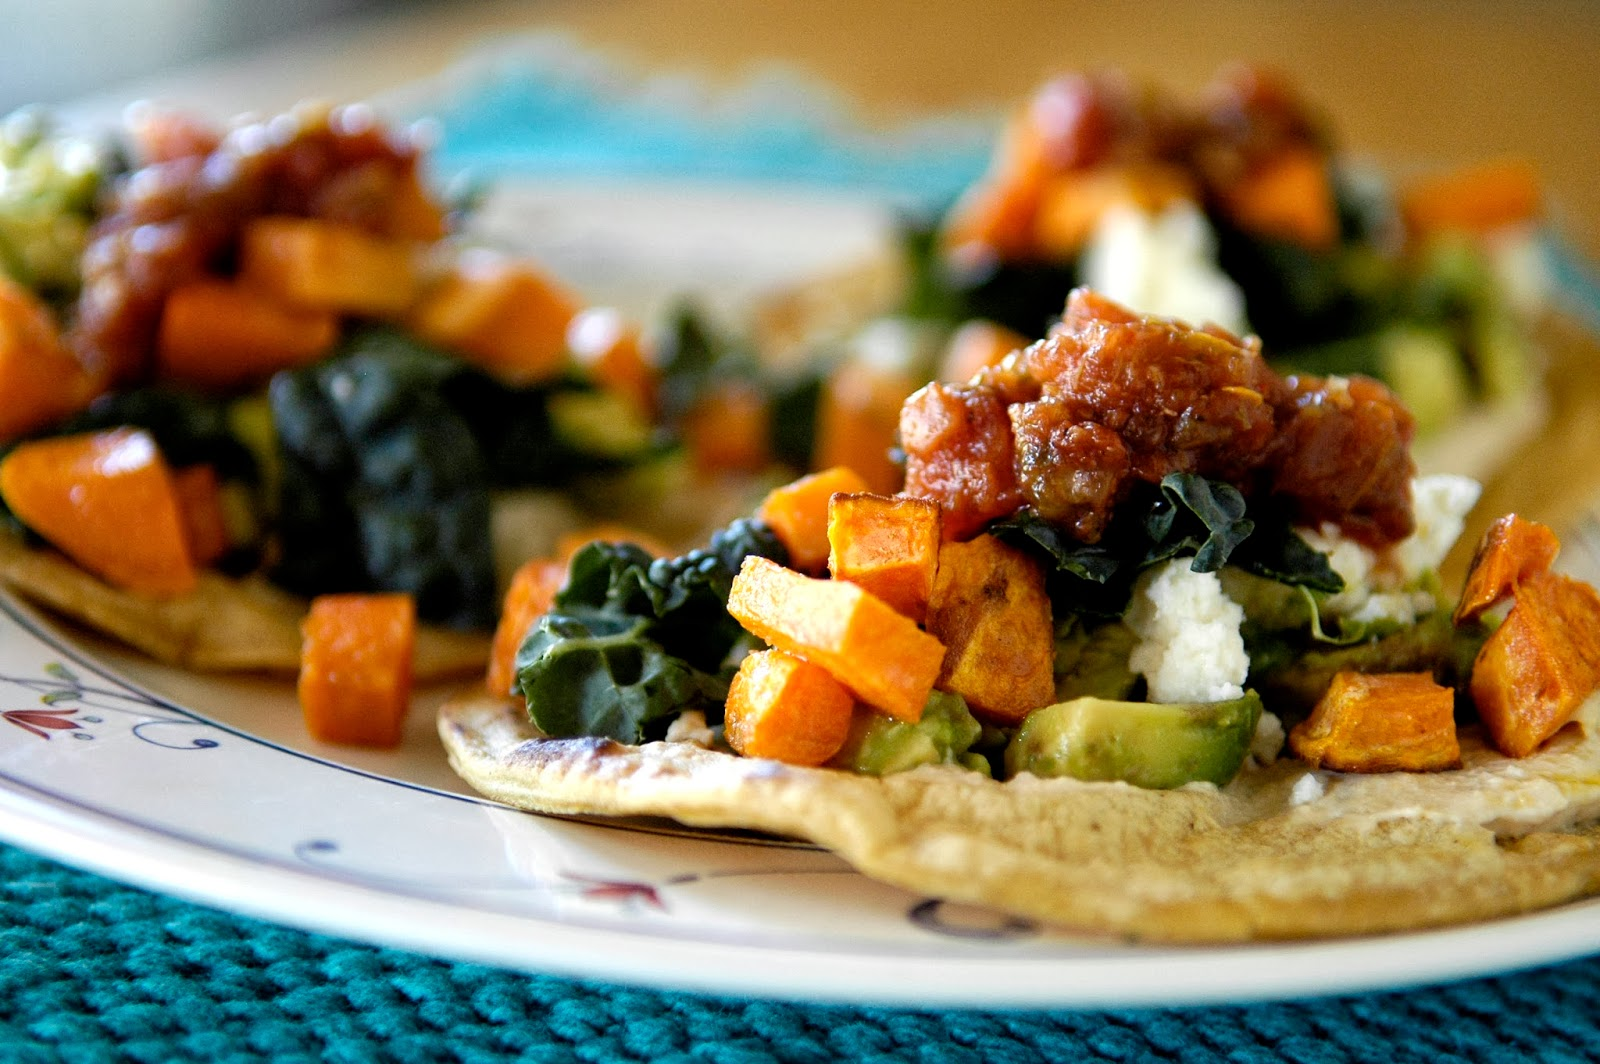 Easy Peasy Organic - Real Food, Real Life: Roasted Sweet Potato and ...